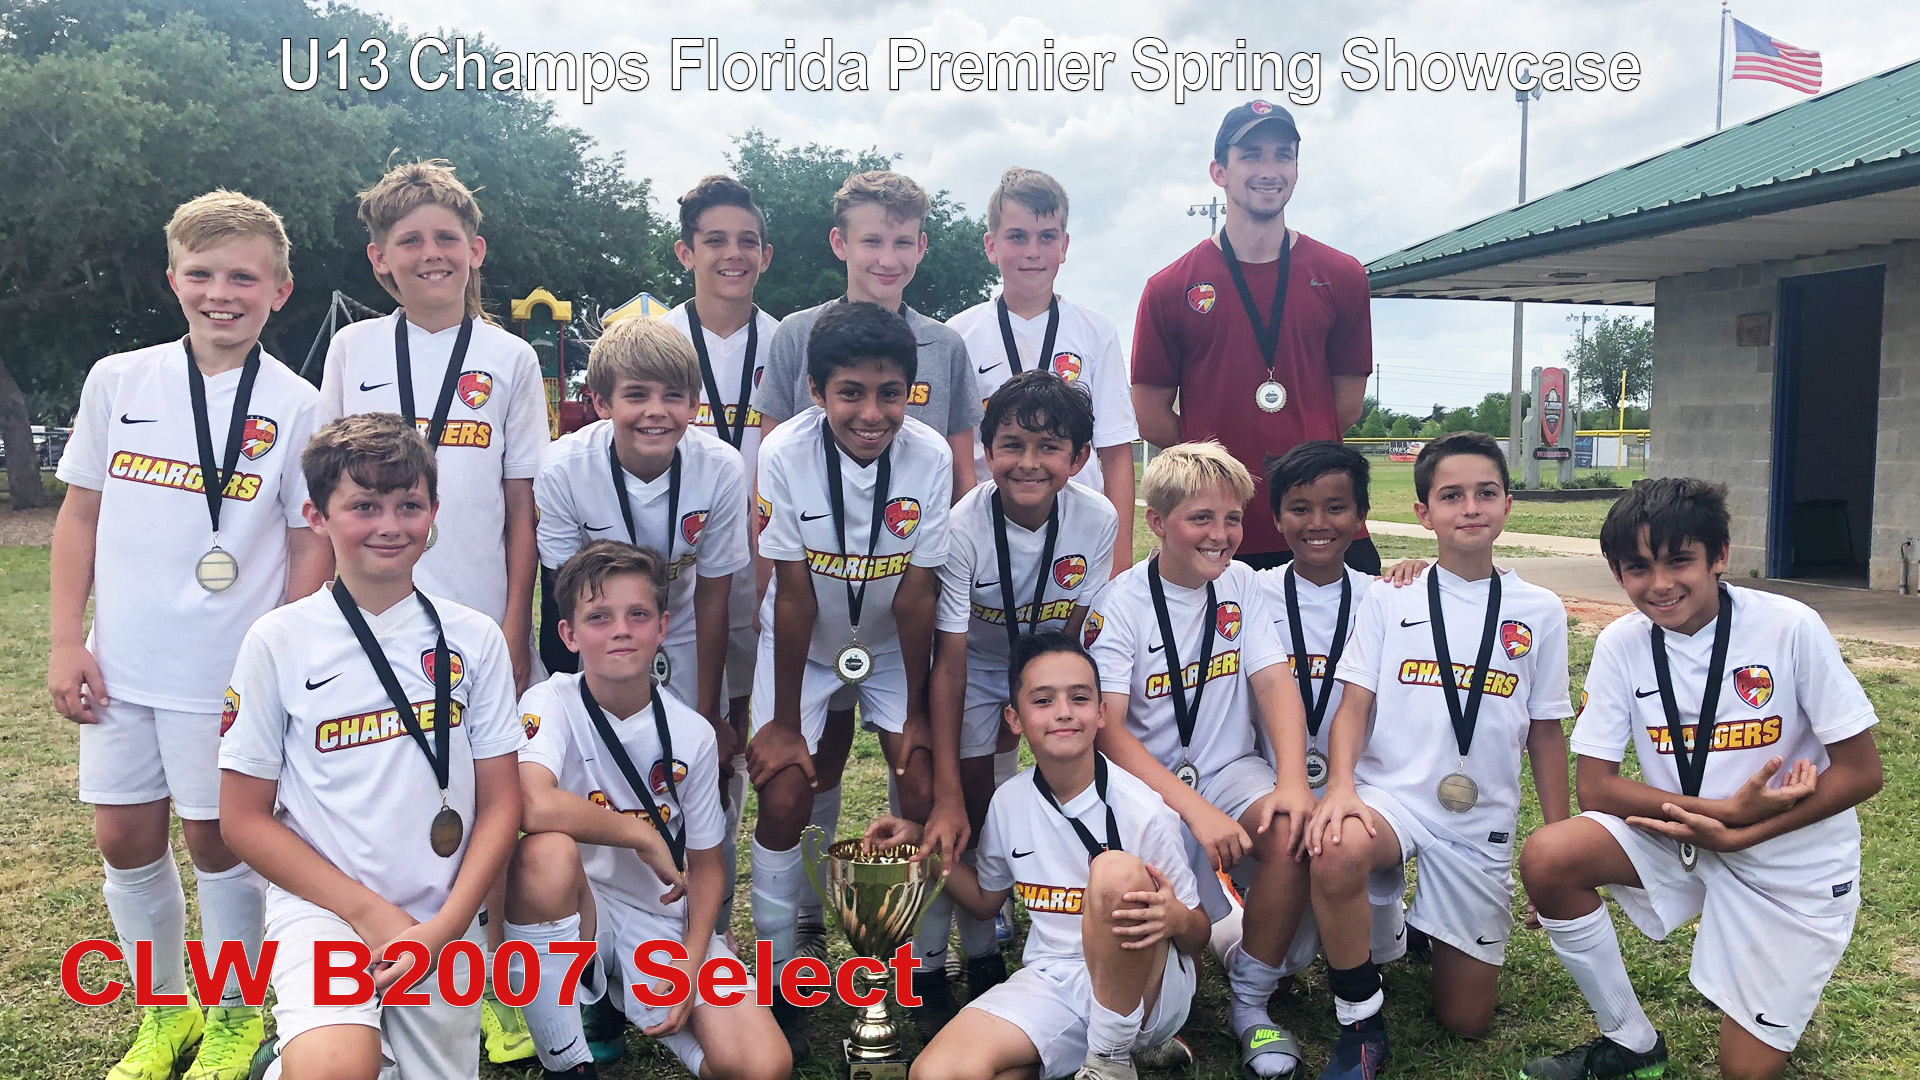 CLW B2007 Select - U13 Champs Spring Showcase